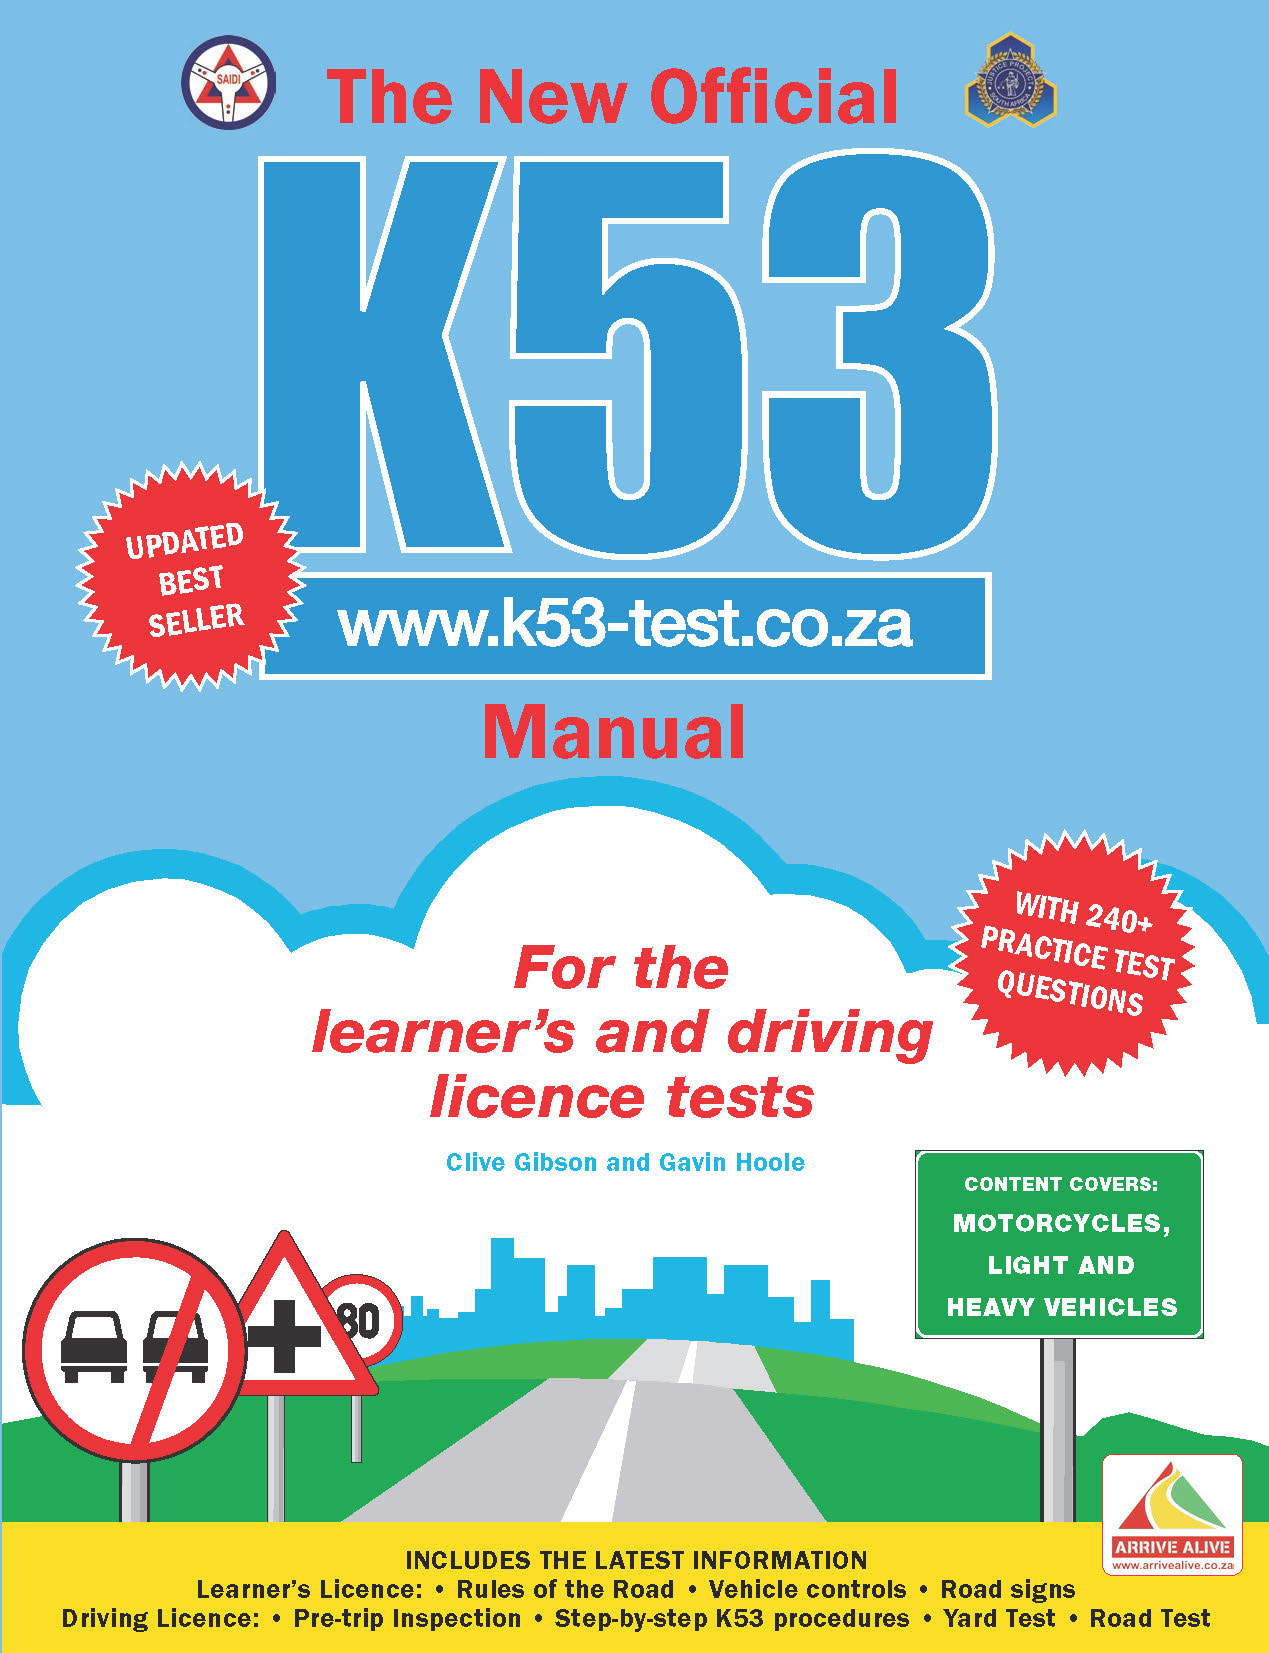 Picture of The new offcial K53 manual